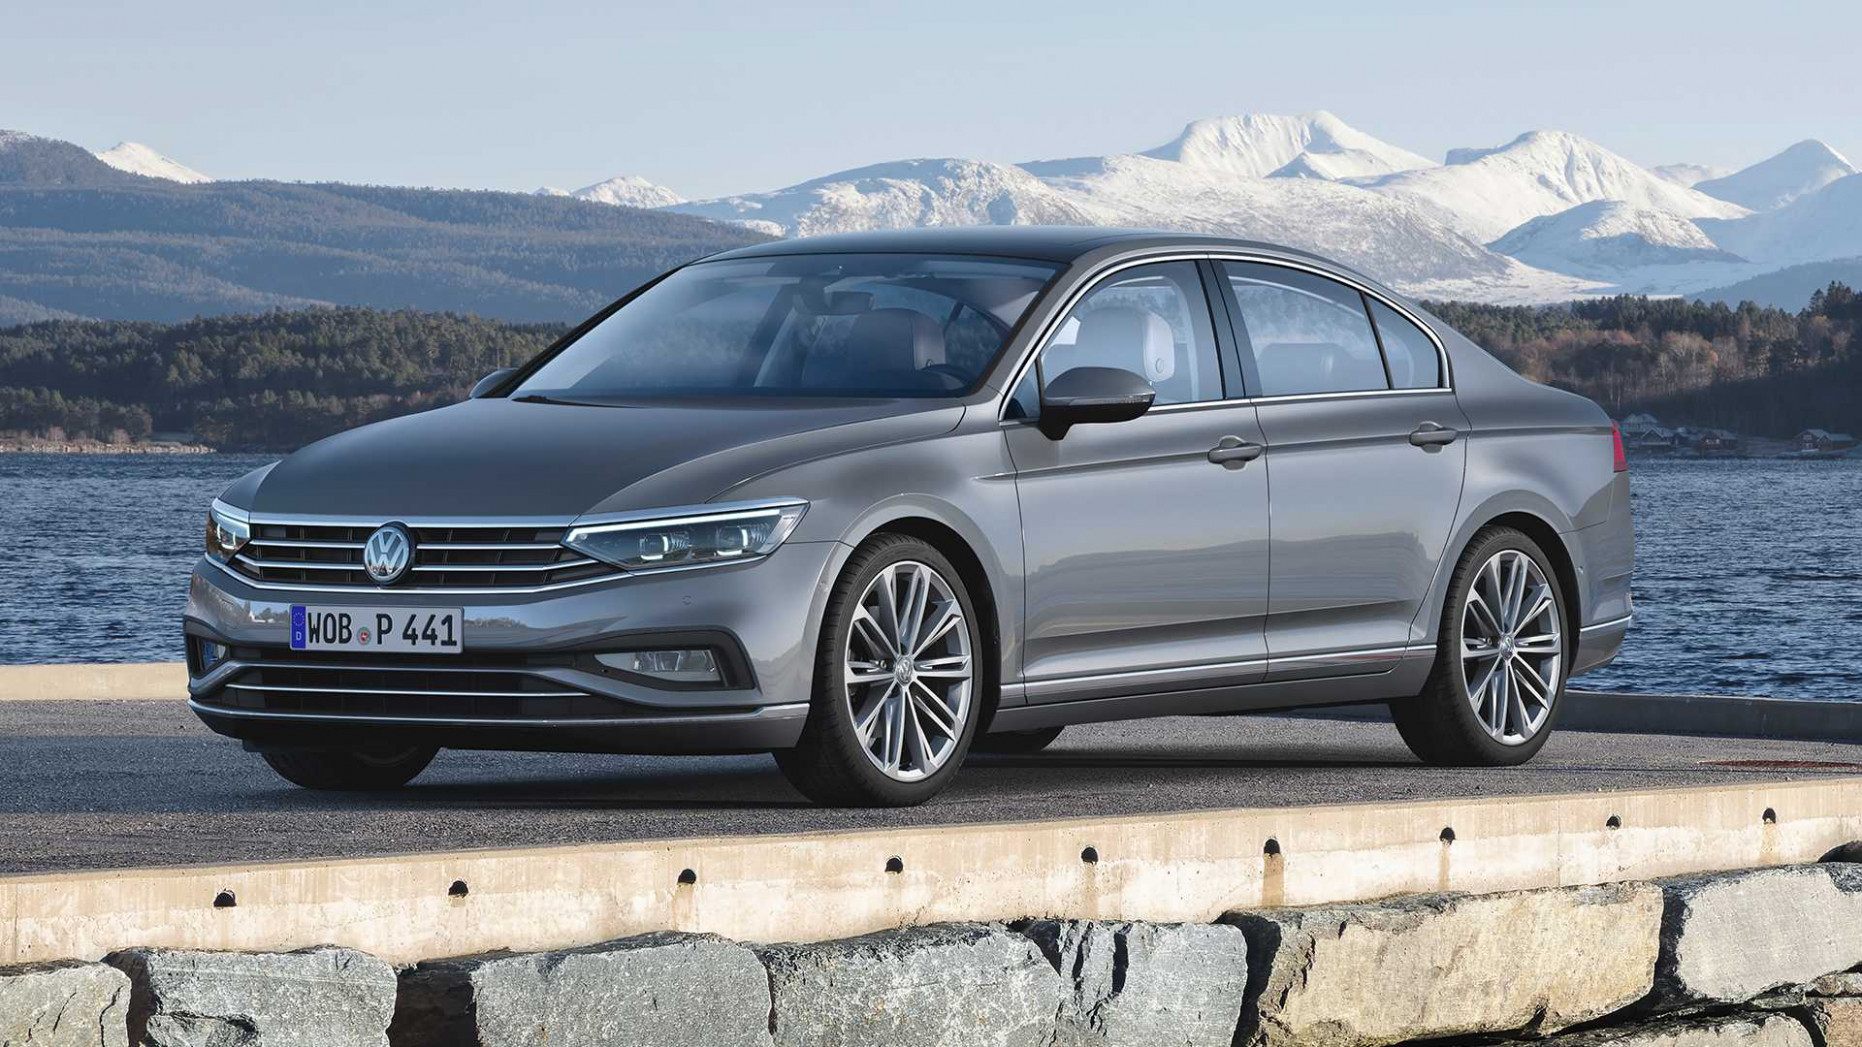 Model Volkswagen Passat 2022 Europe